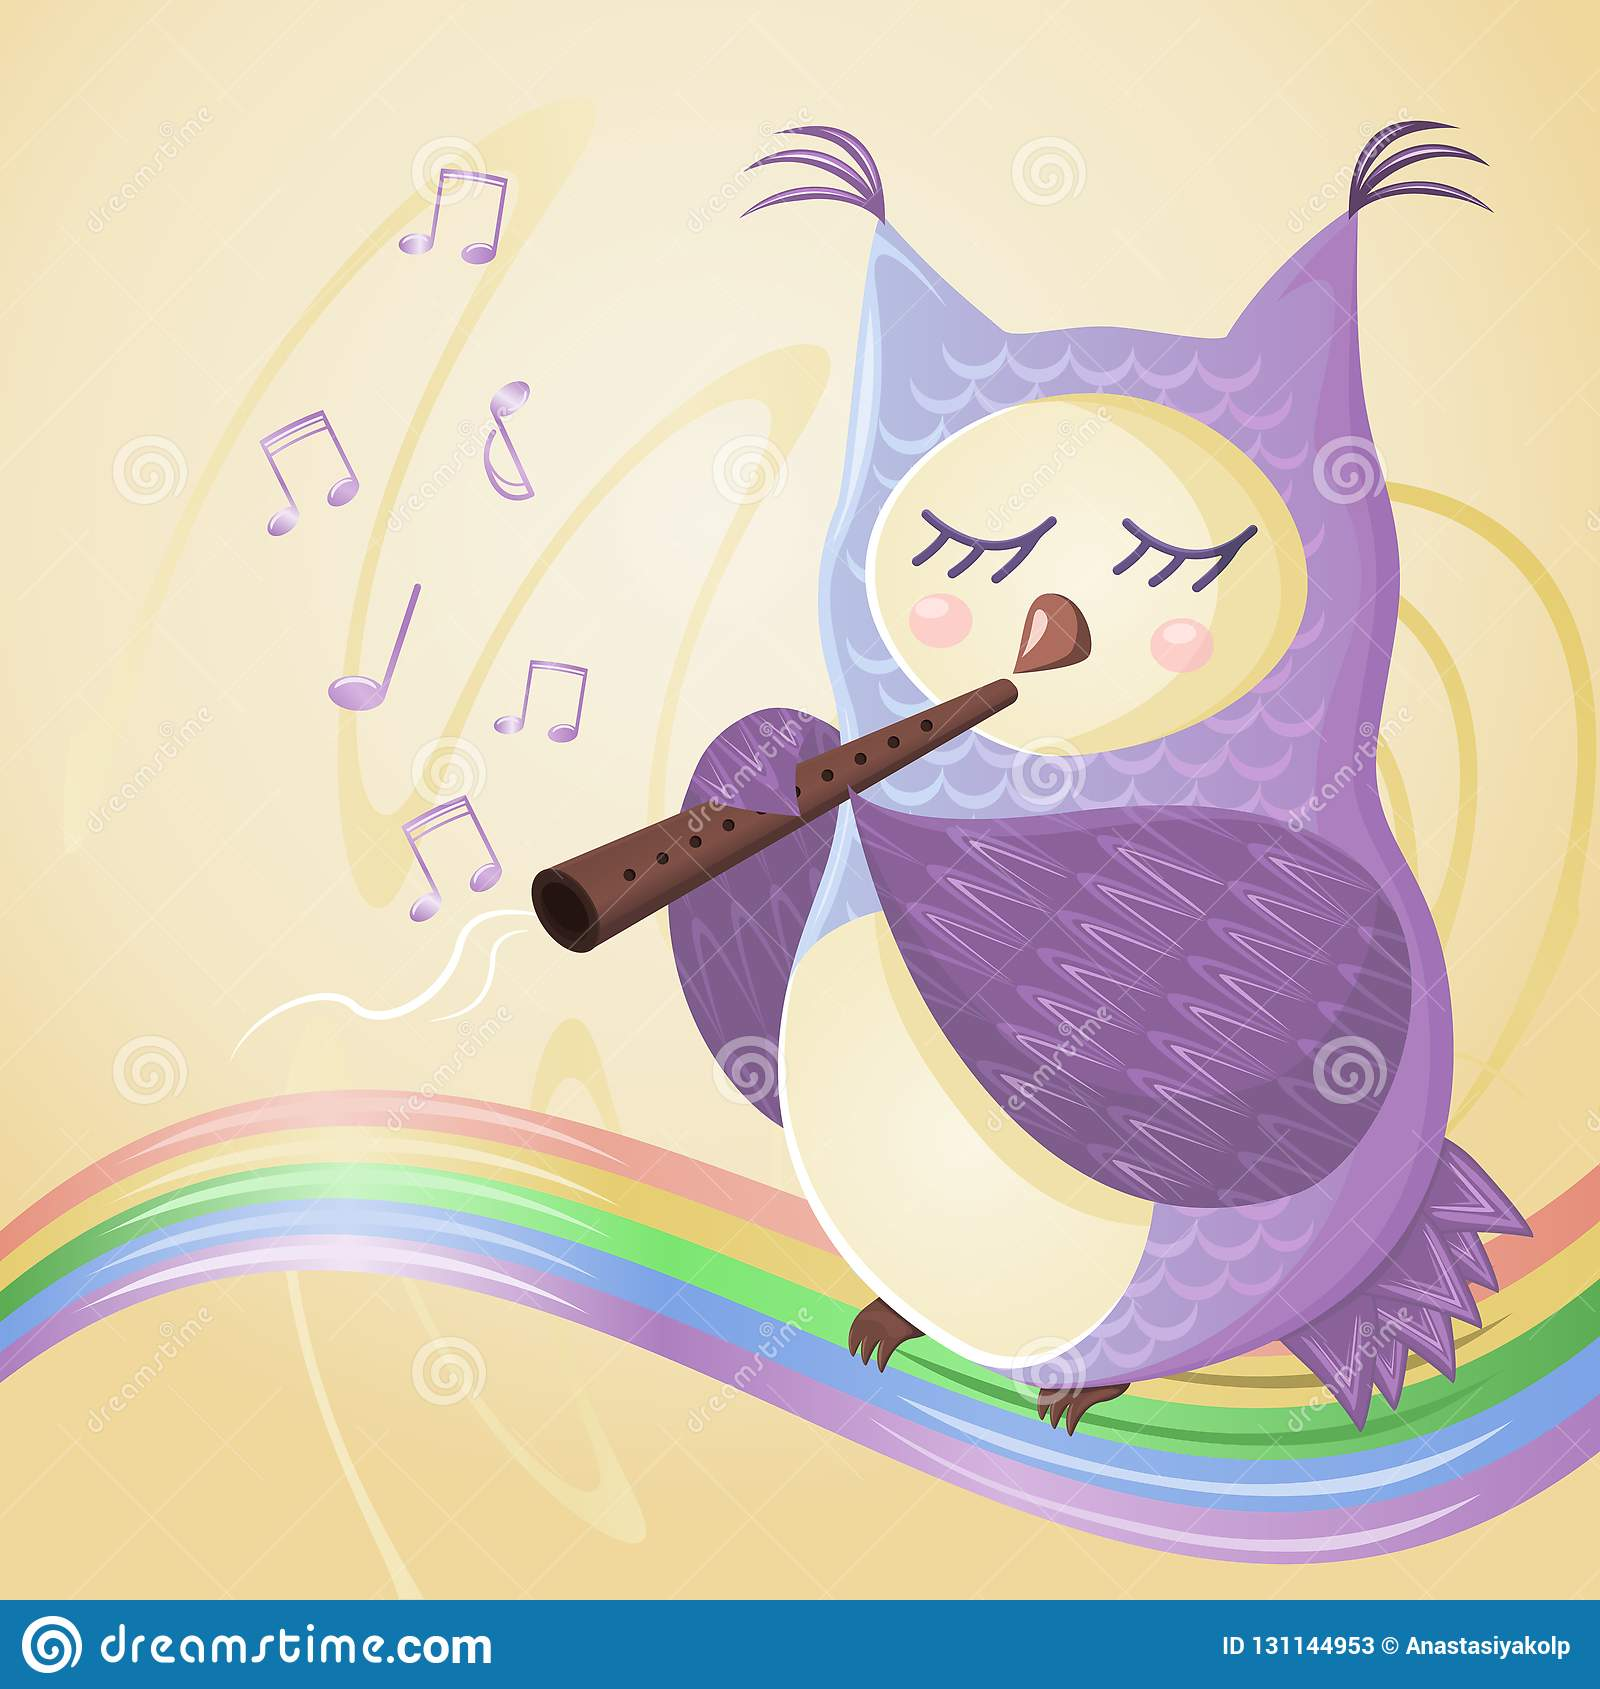 Owl play the flute on the rainbow, musical notes fly around her